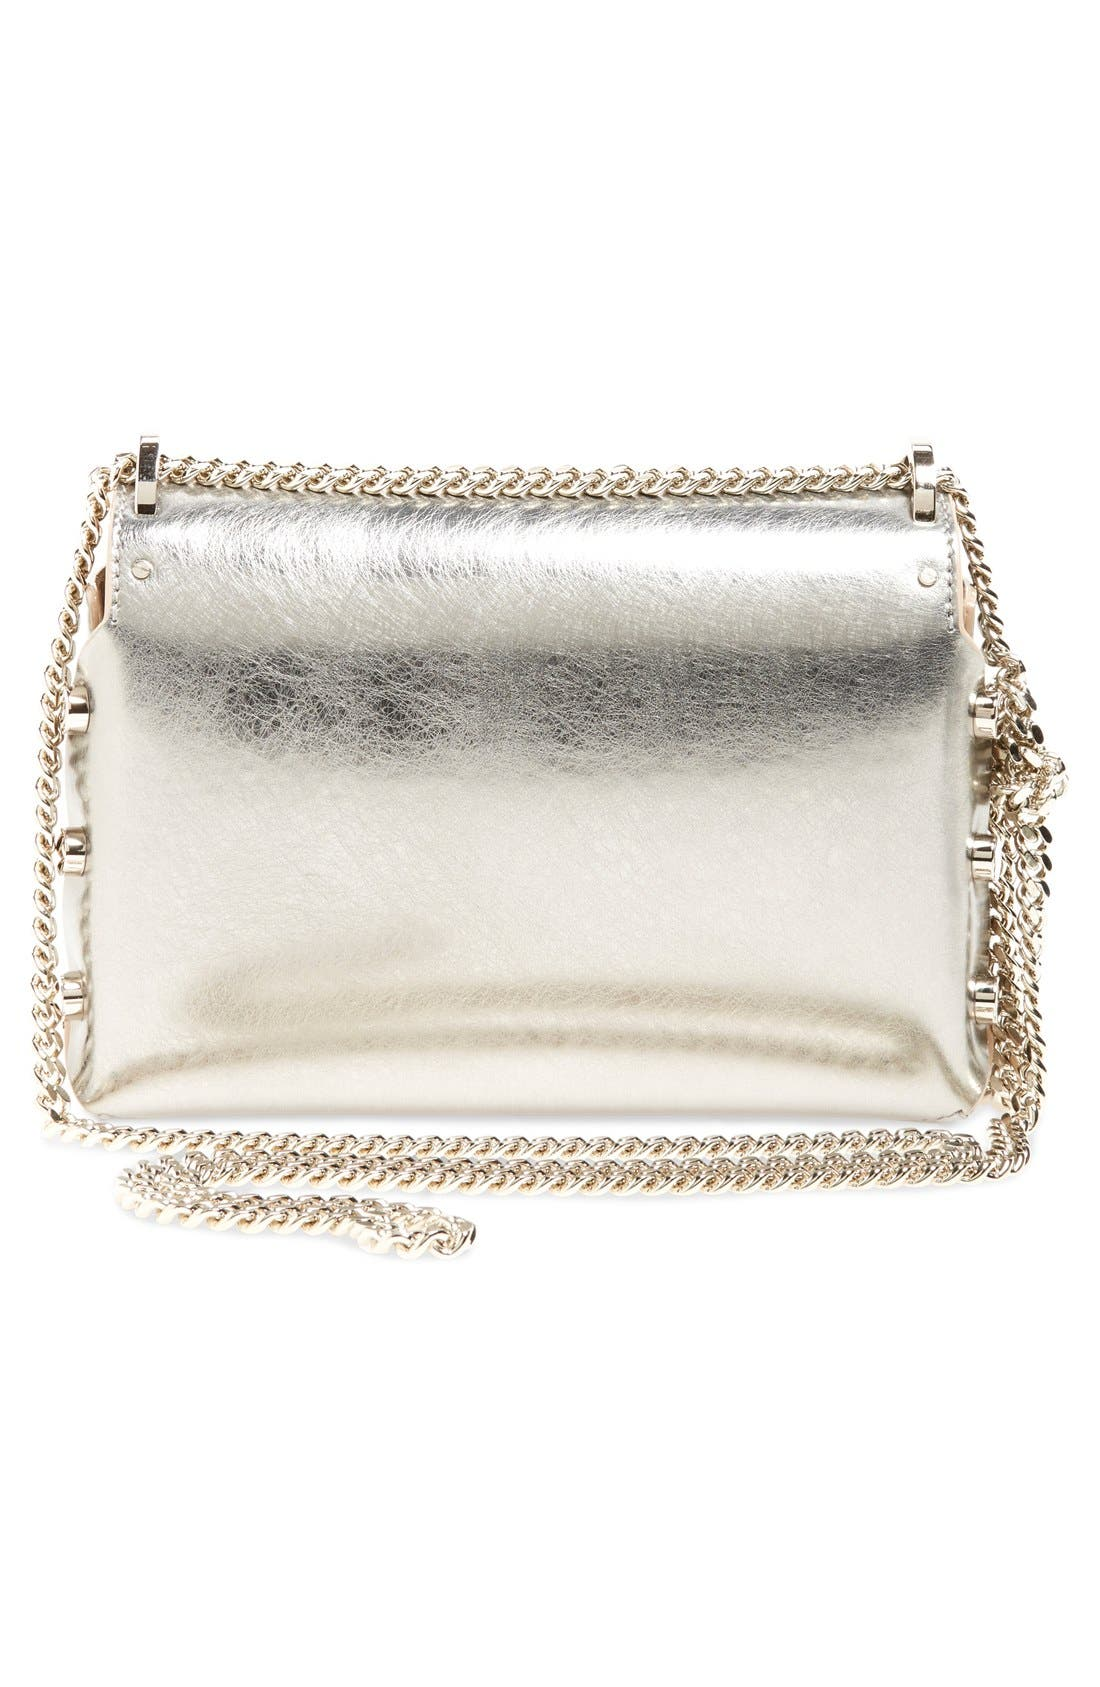 'Lockett Petite' Metallic Leather Shoulder Bag,                             Alternate thumbnail 3, color,                             Vintage Silver